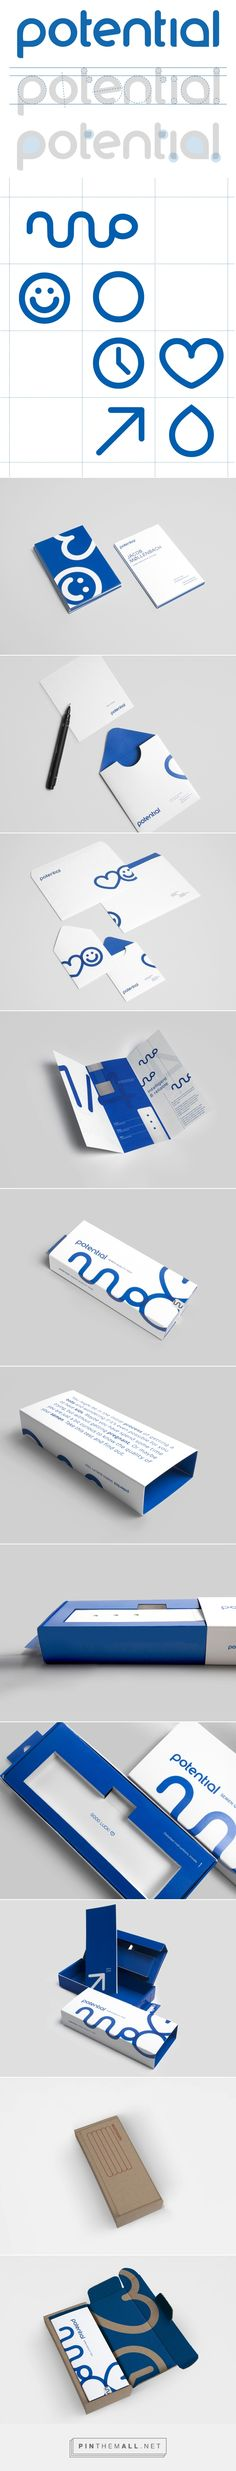 Potential identity packaging branding on Behance curated by Packaging Diva PD. Potential is a semen quality test, which will become available in retail stores, pharmacies and its own online store.